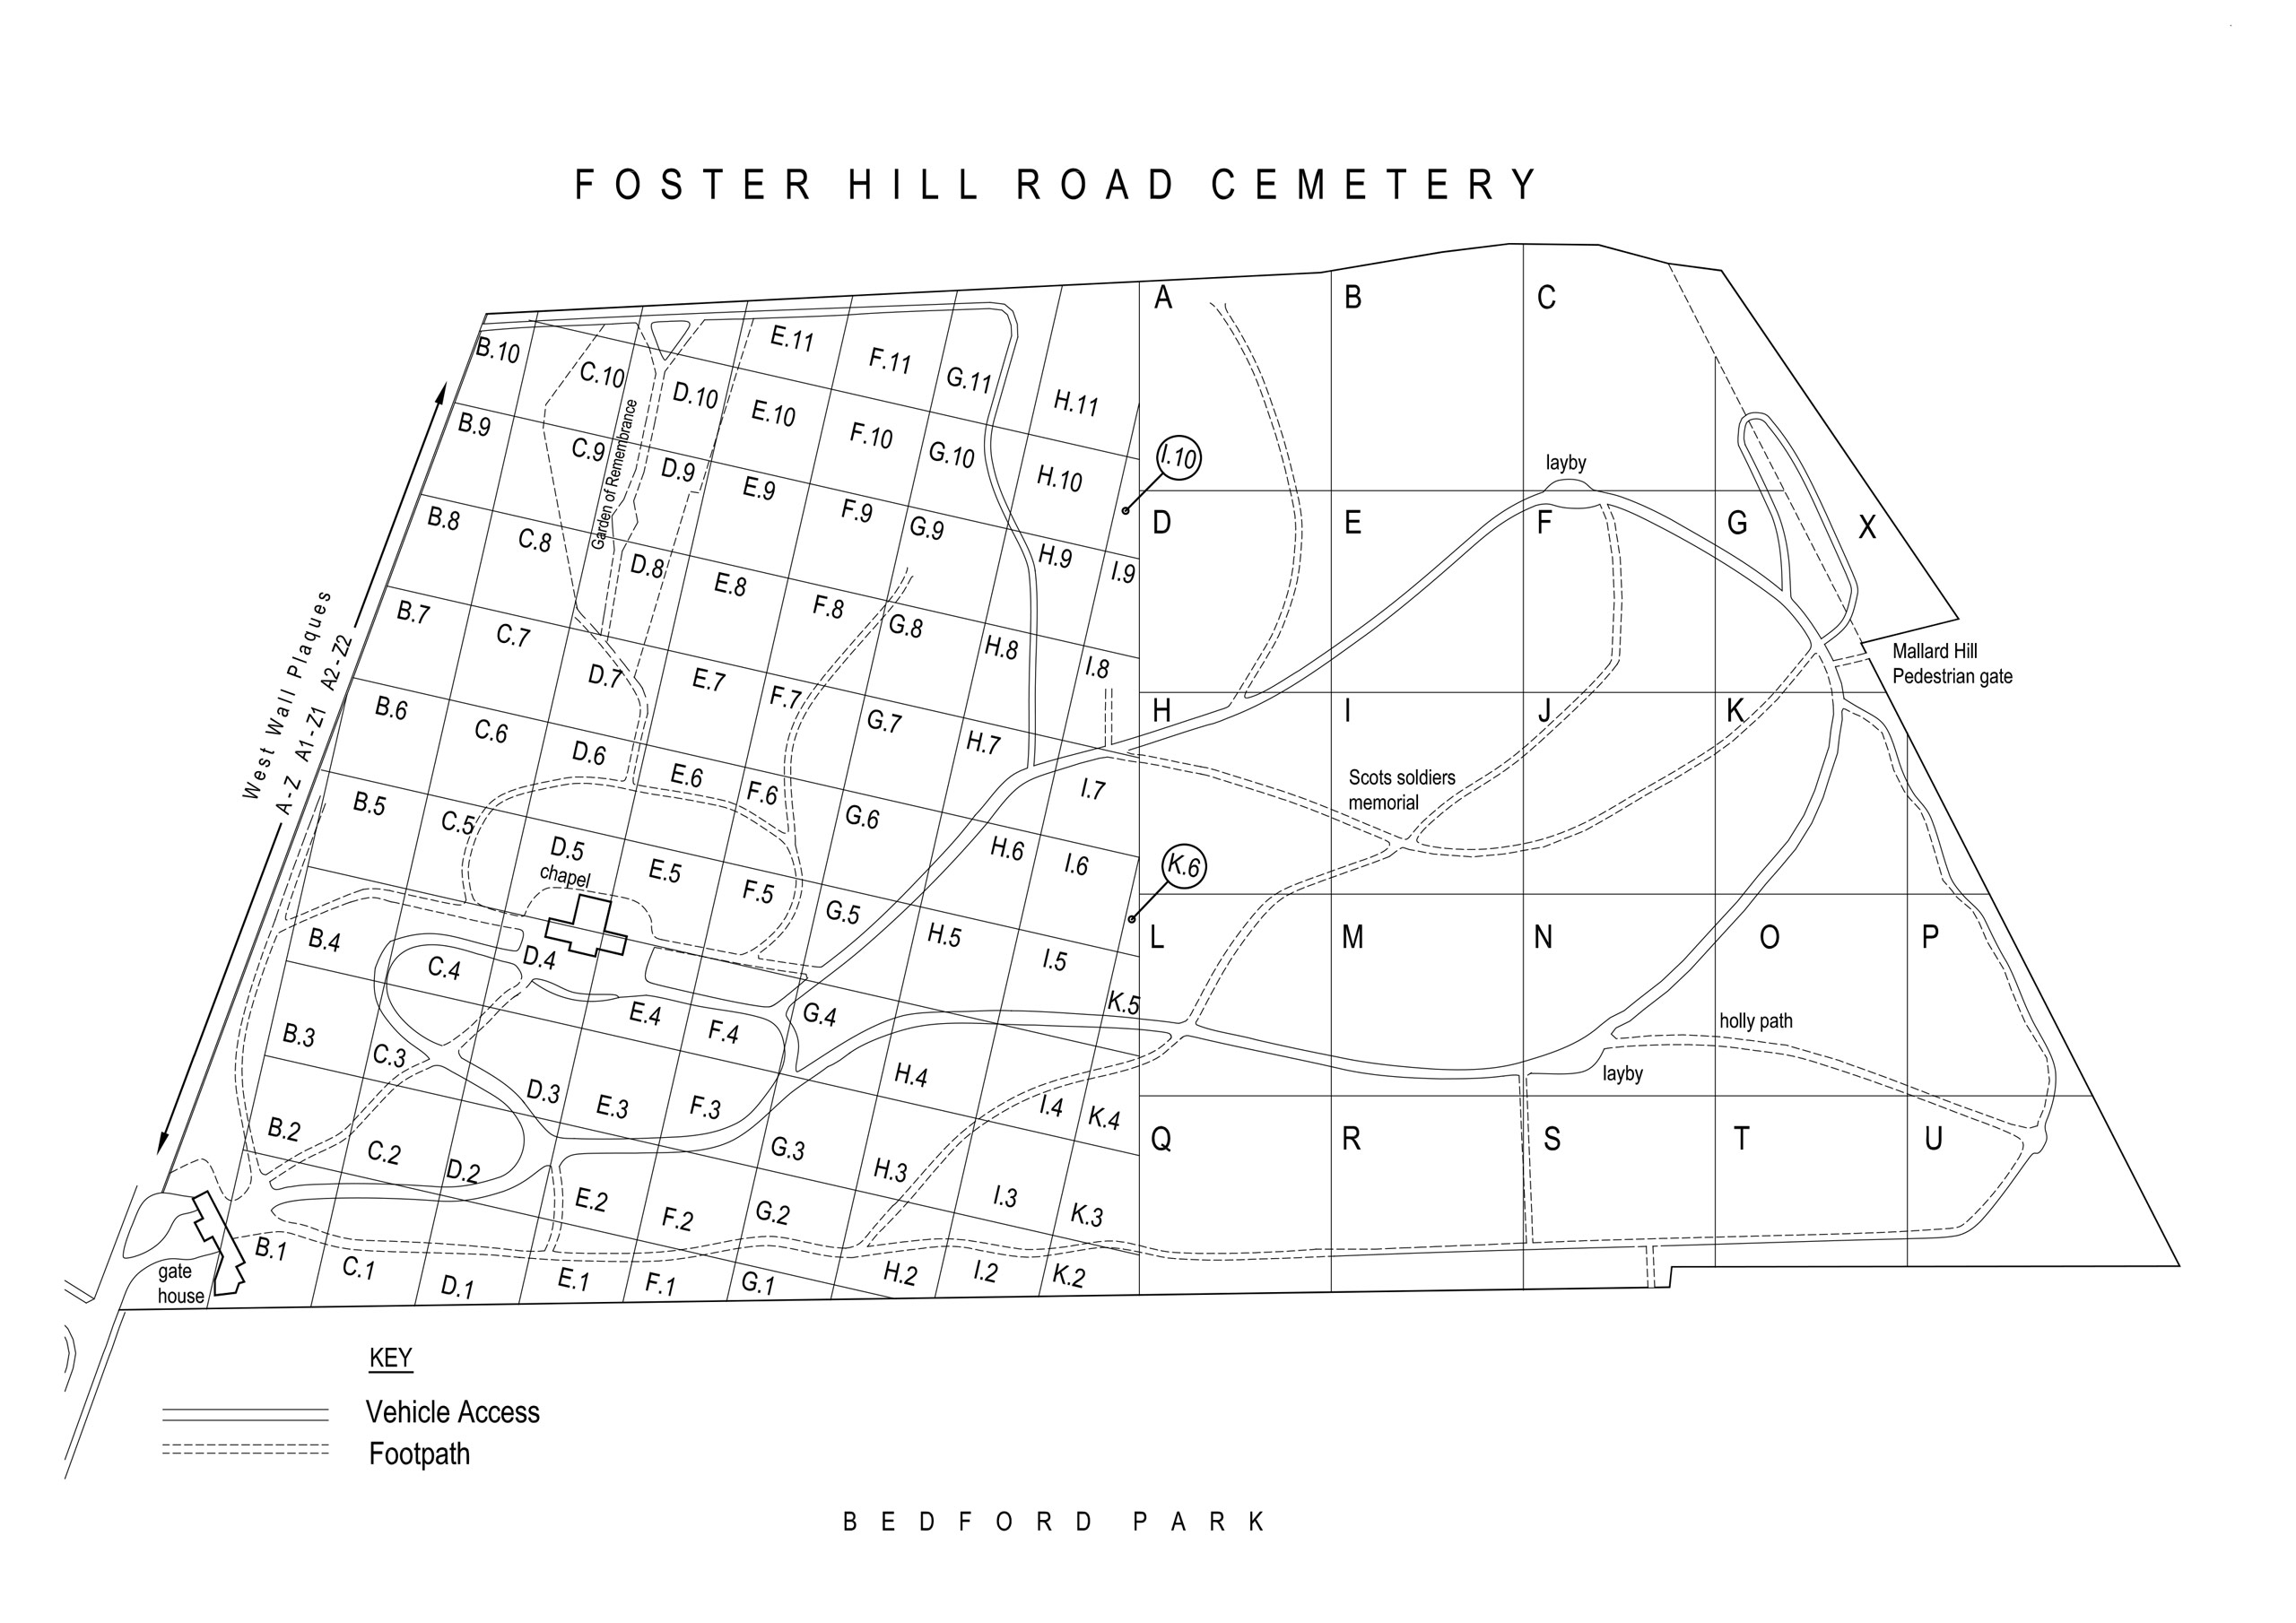 Foster Hill Road Cemetery Location Grid